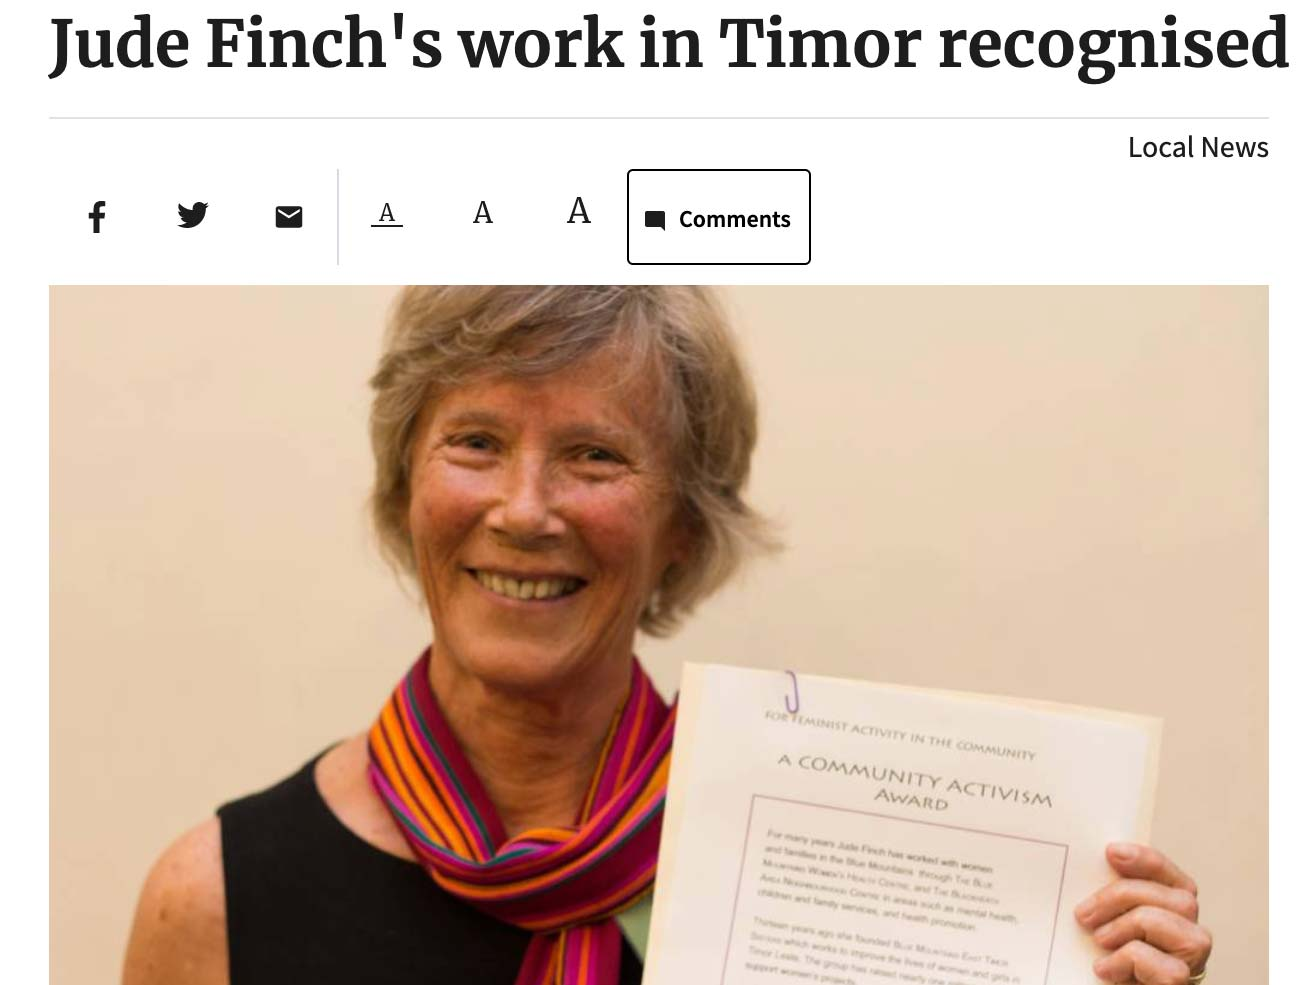 Article headline: Jude Finch's work in Timor recognised